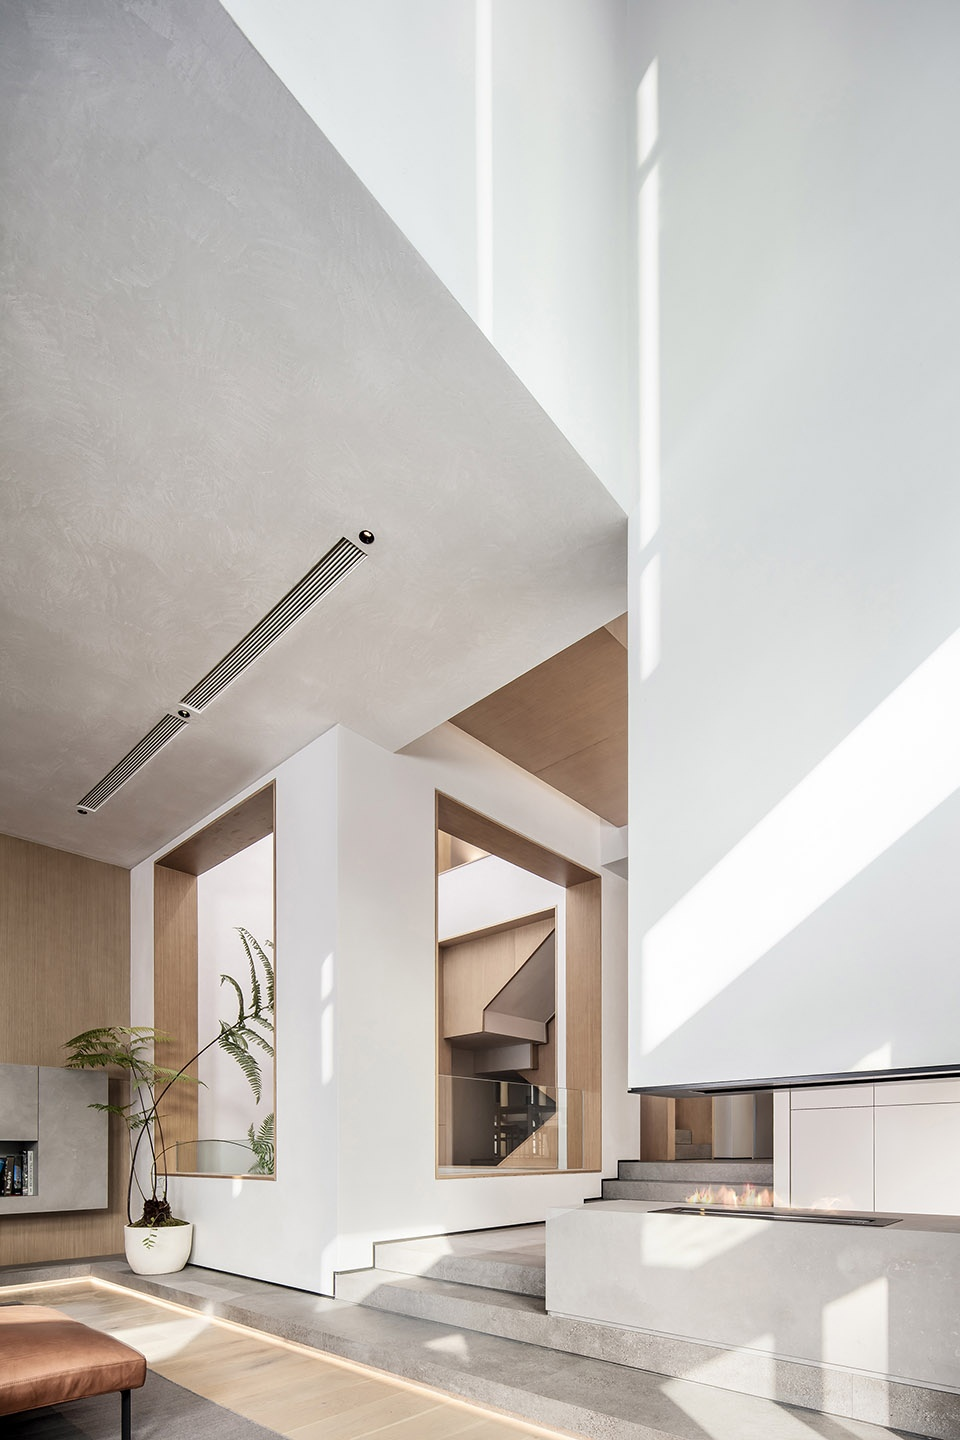 015-a-desired-home-china-by-liang-architecture-studio-960x1440.jpg